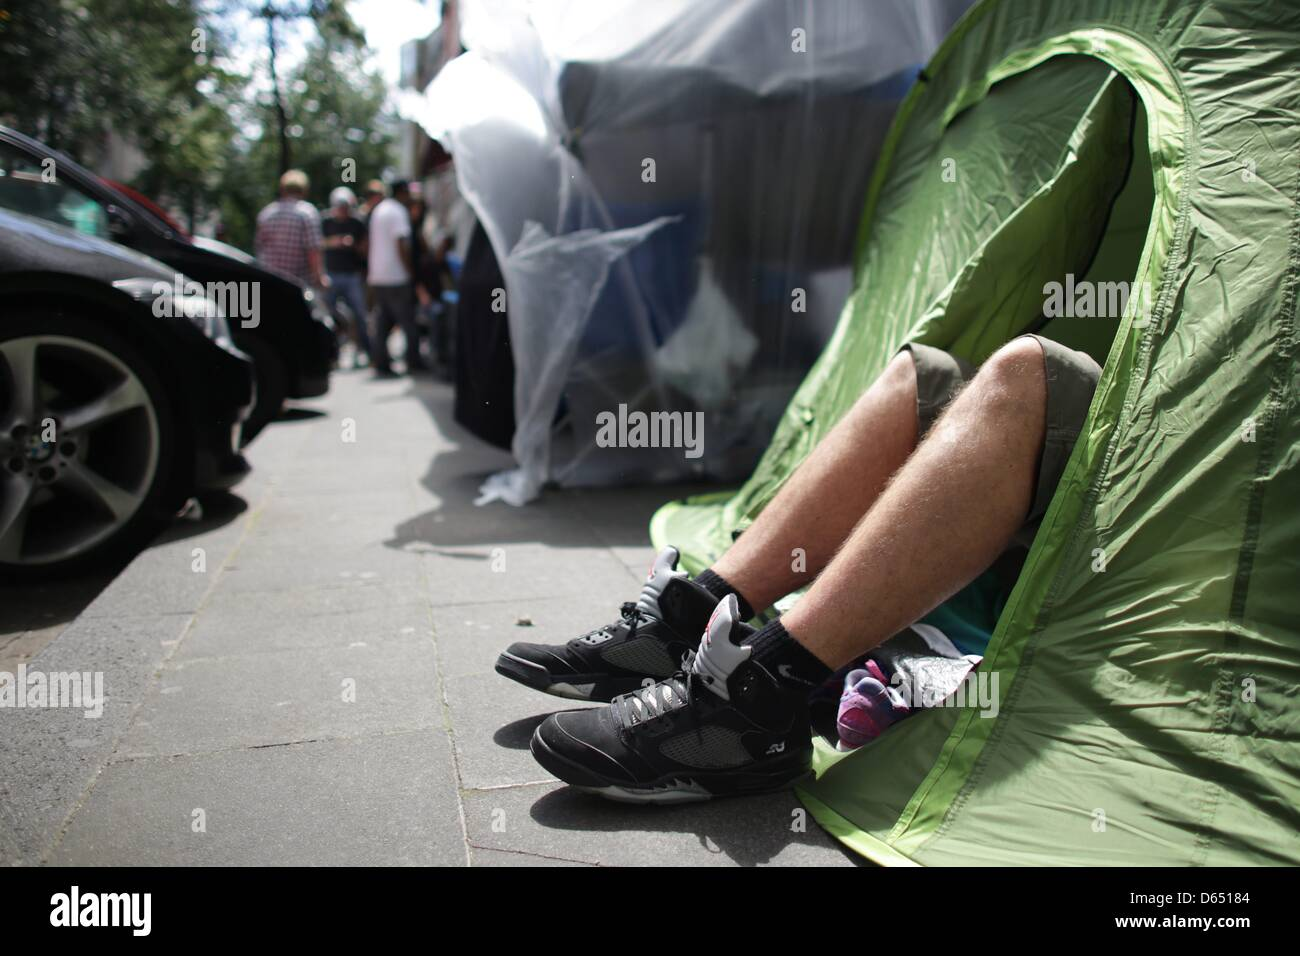 Fans camp outside of 'The Good Will Out' sneaker store in Cologne, Germany, 08 June 2012. American rapper - Stock Image